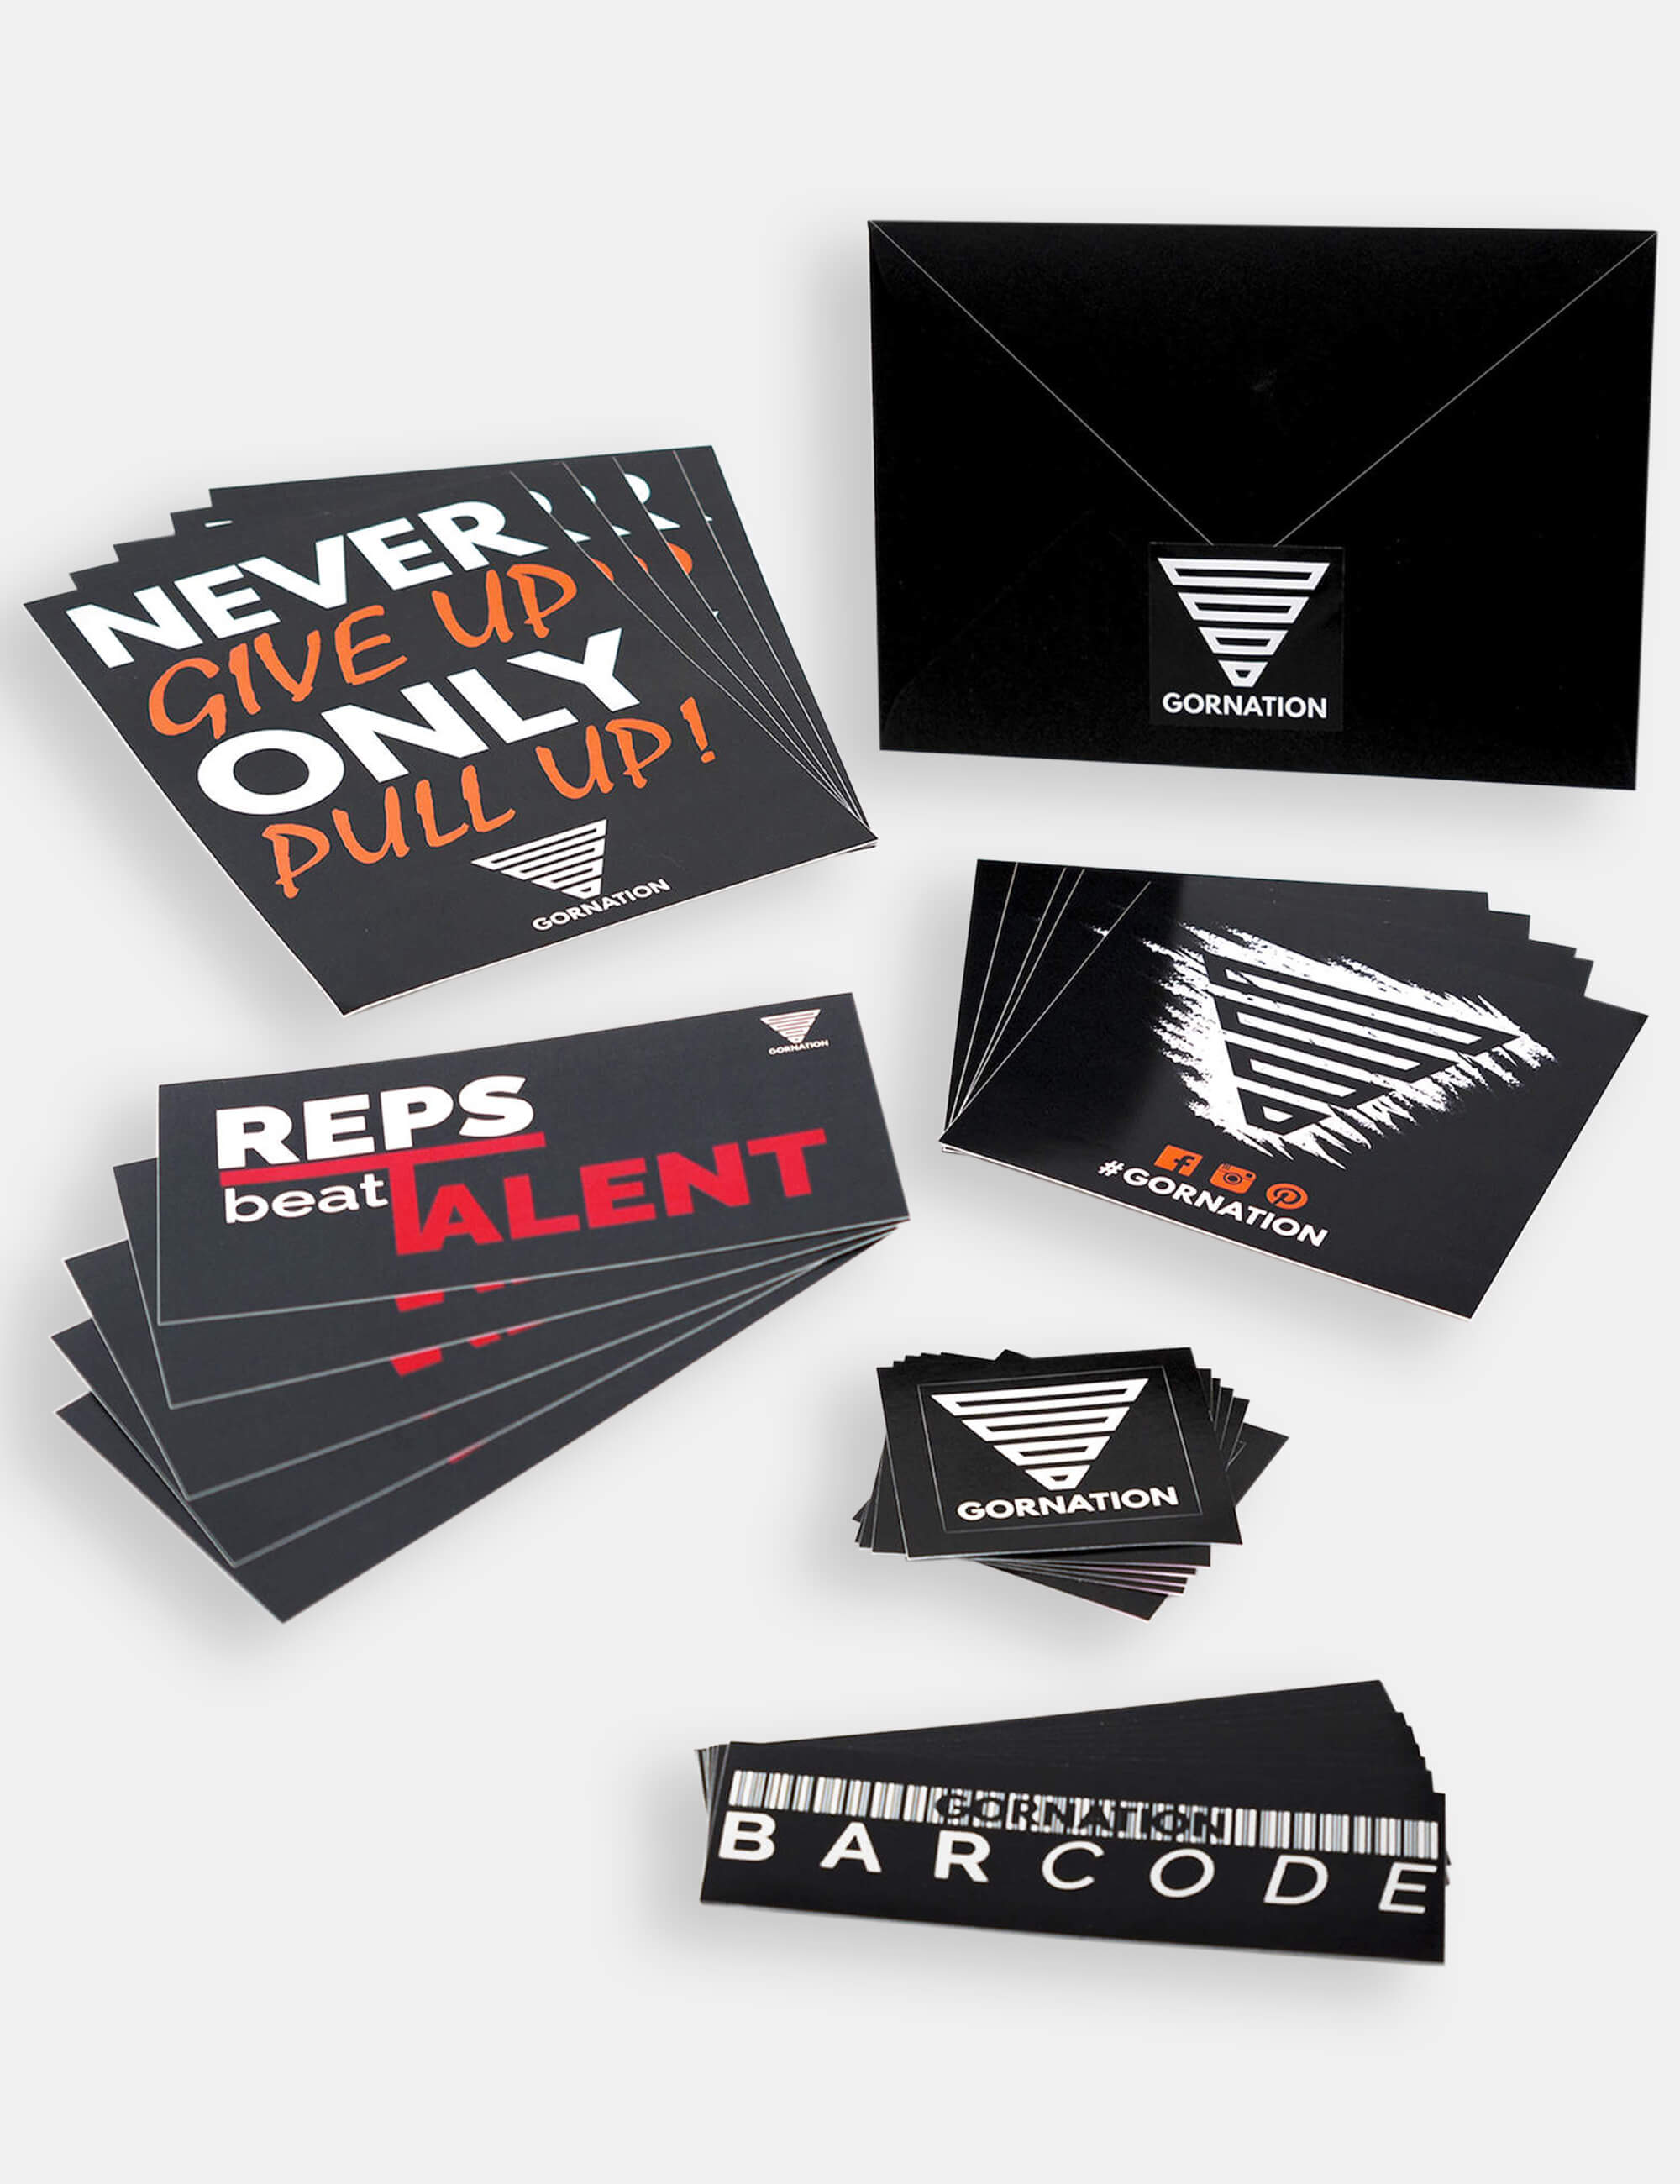 Calisthenics Gornation sticker collection.